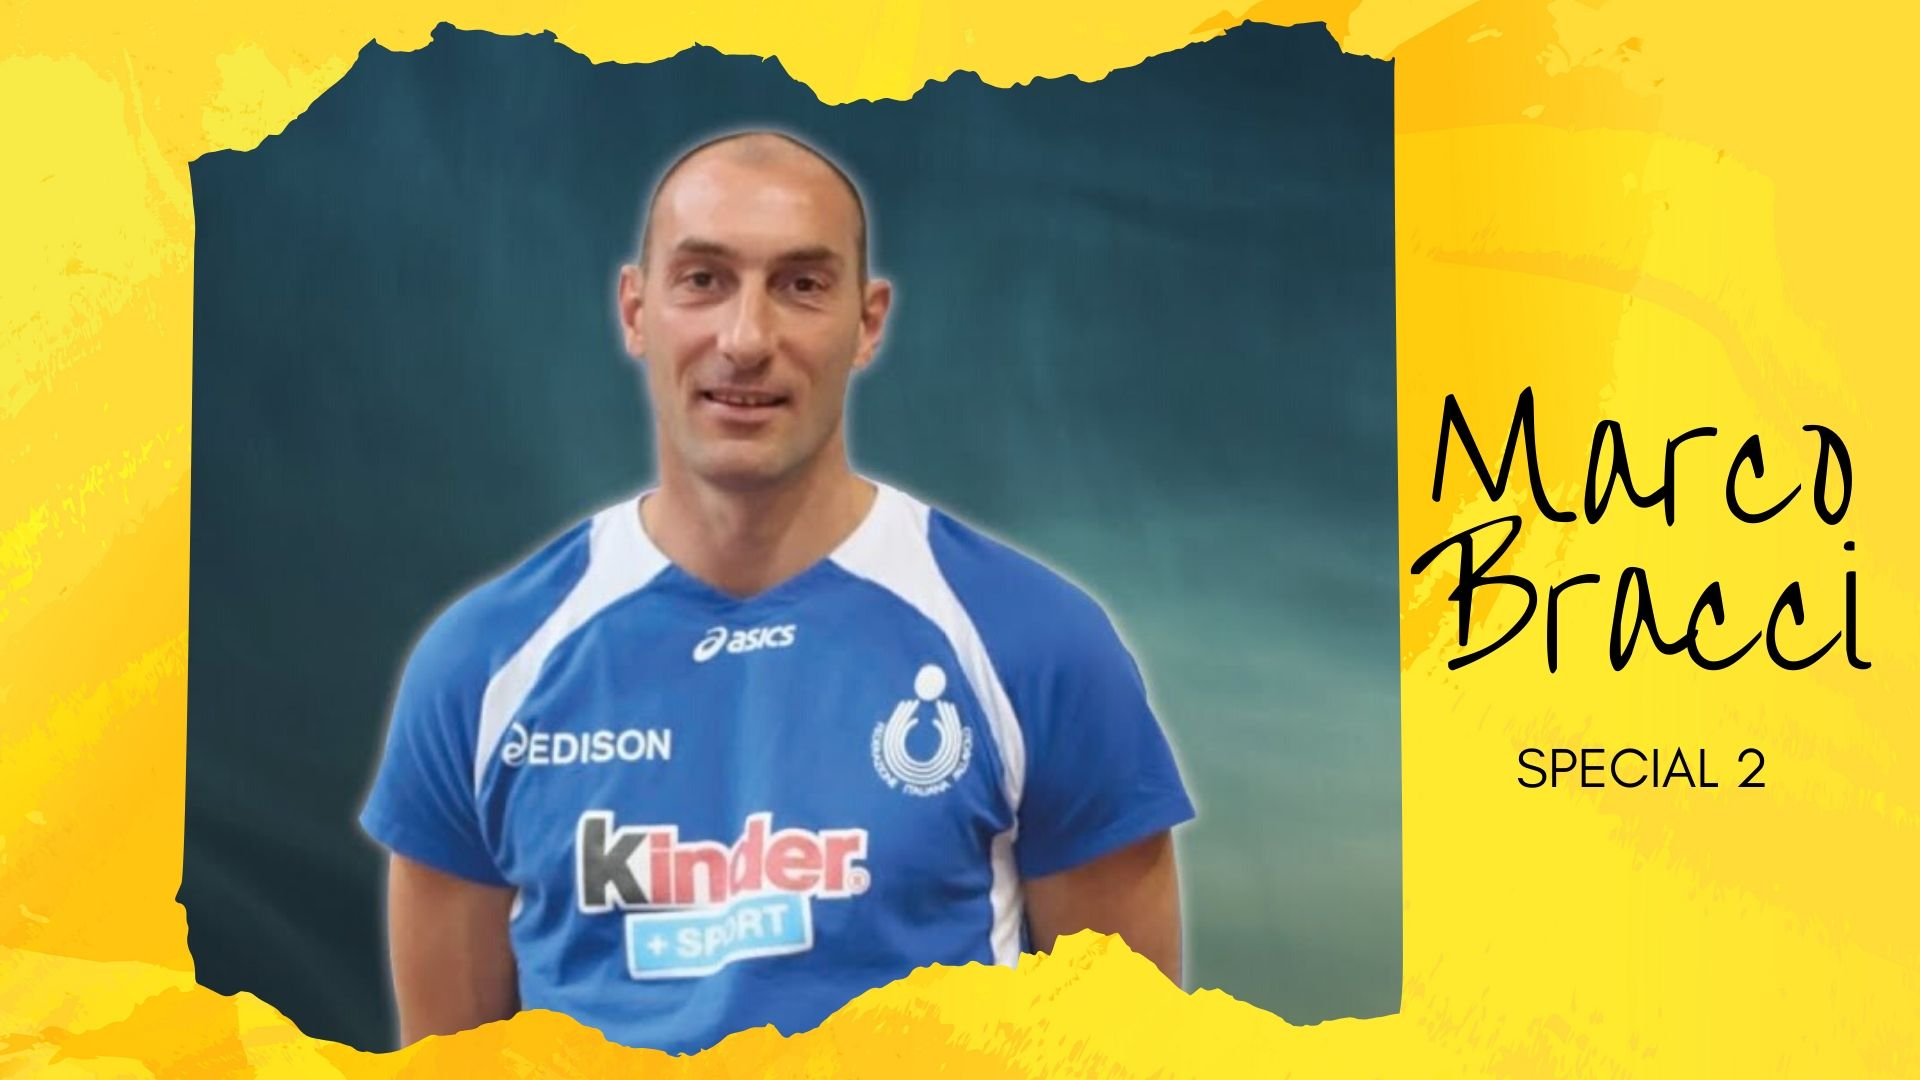 IL FENOMENO MARCO BRACCI TORNA ALL'ANDERLINI VOLLEY CAMP!